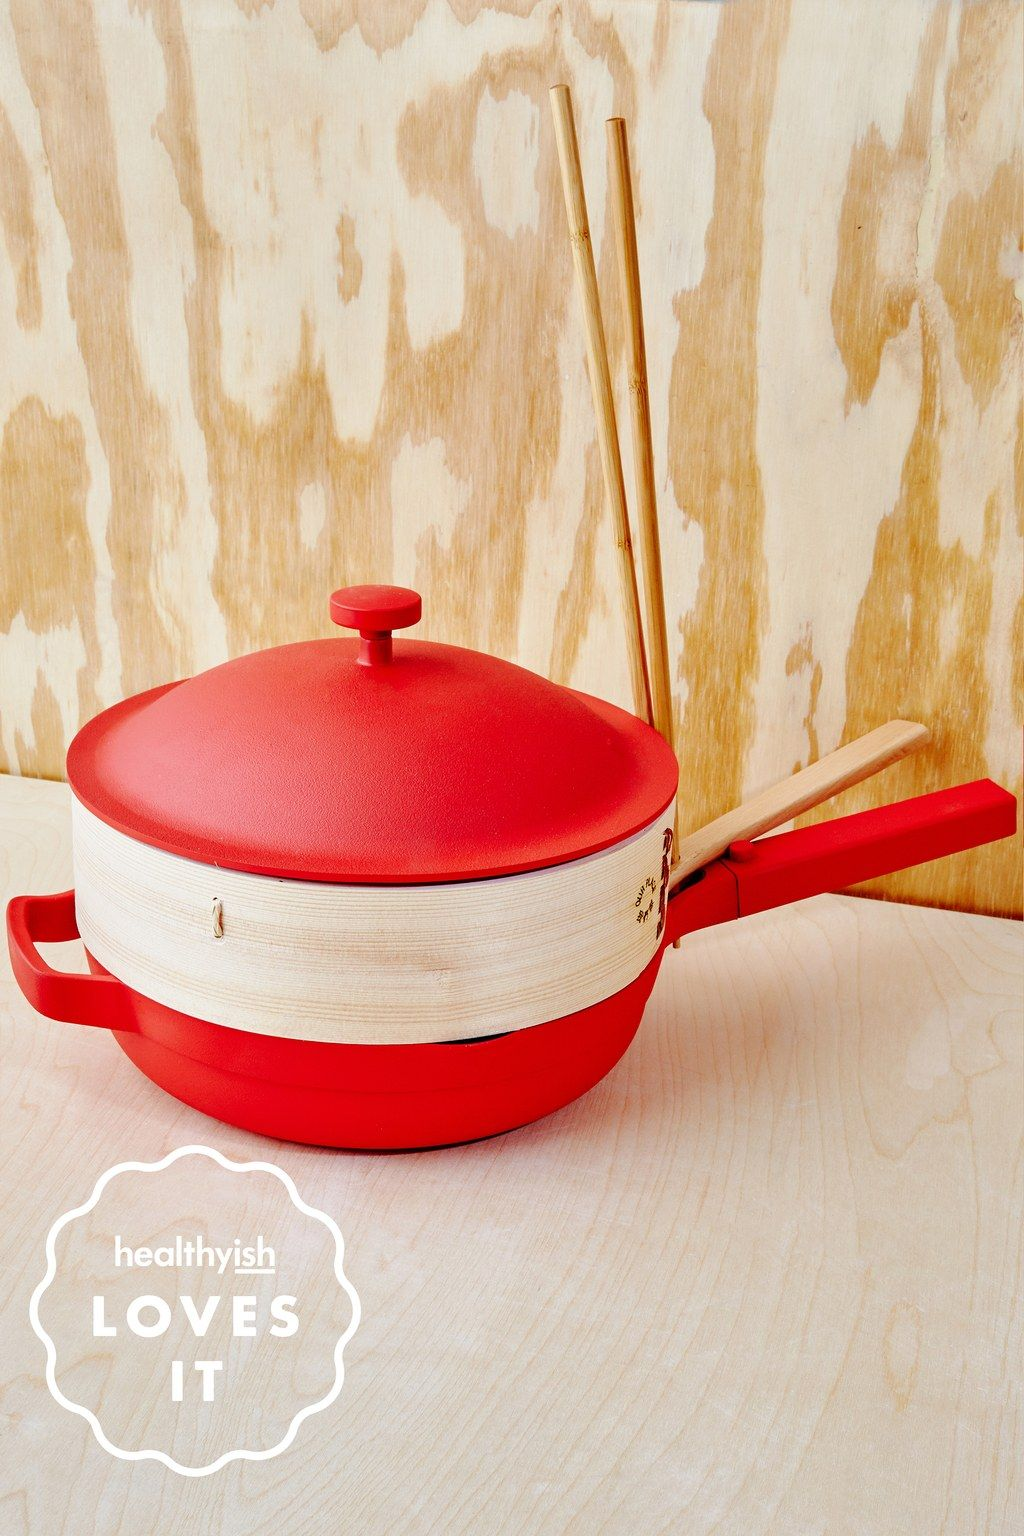 An All In One Pan I Use For Every Meal Pan Cooking Essentials Cool Things To Buy